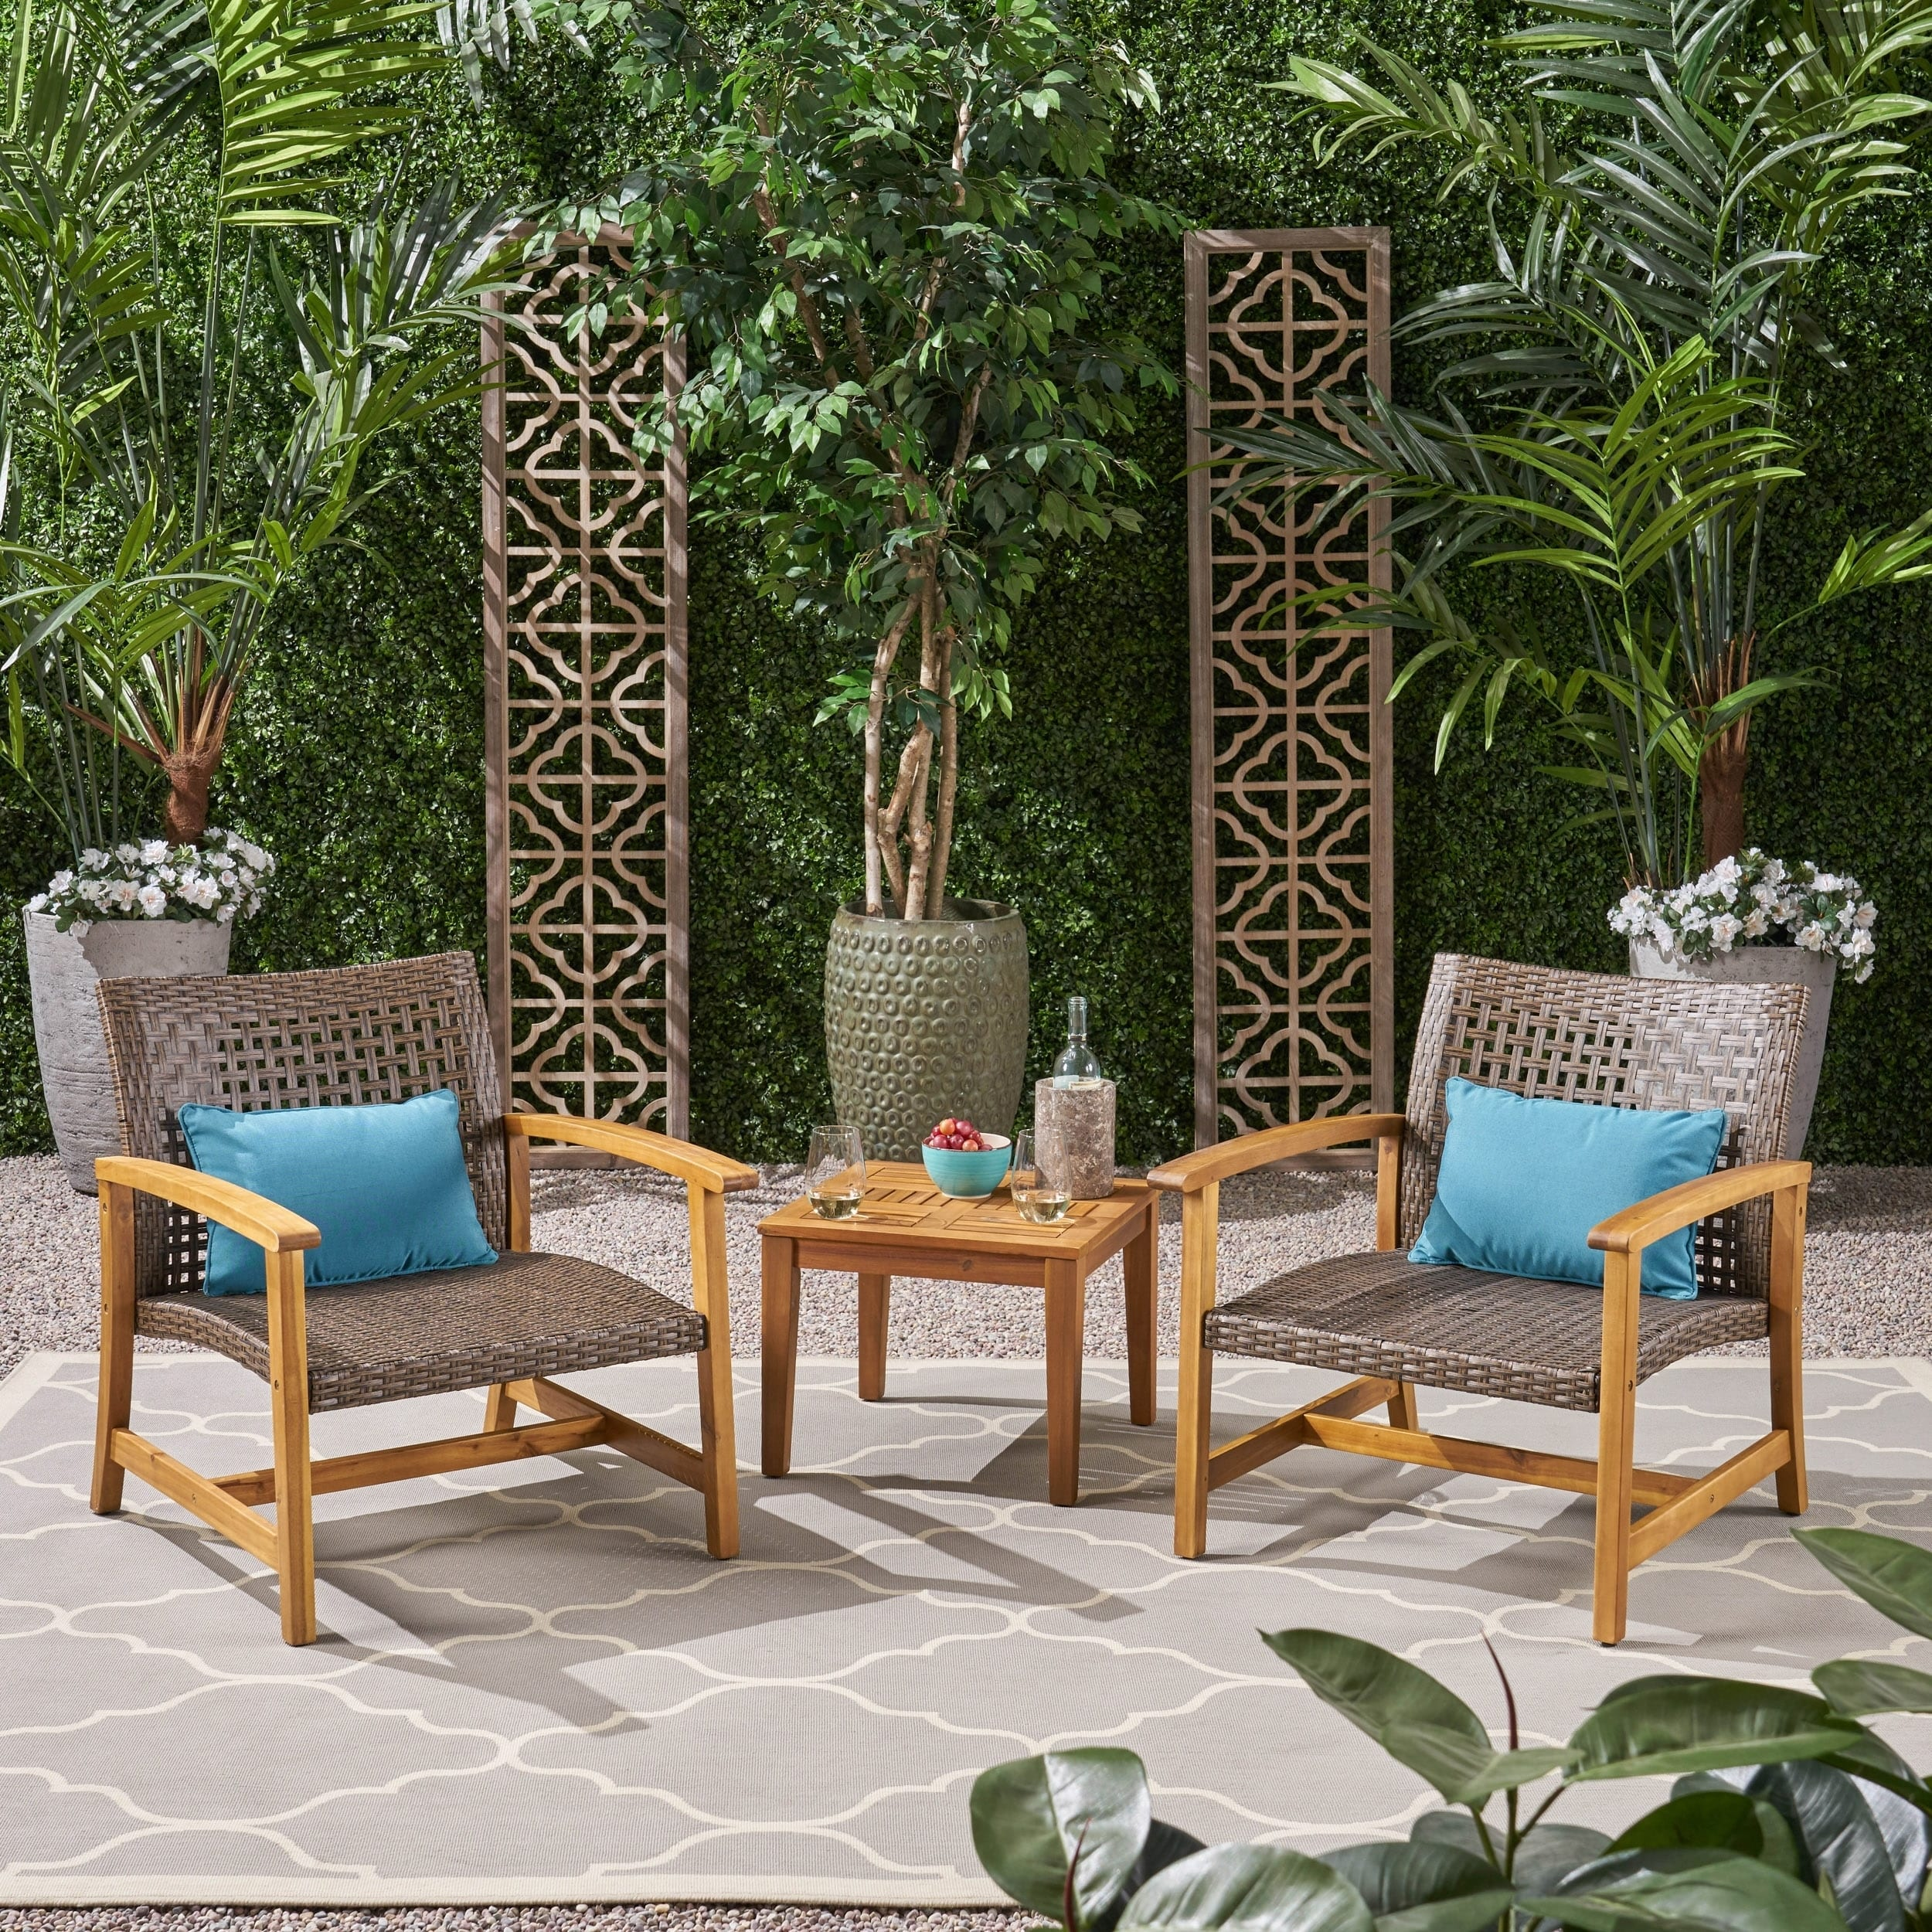 Christopher Knight Home Hampton Outdoor 3 Piece Wood and Wicker Club Chairs and Side Table Set by